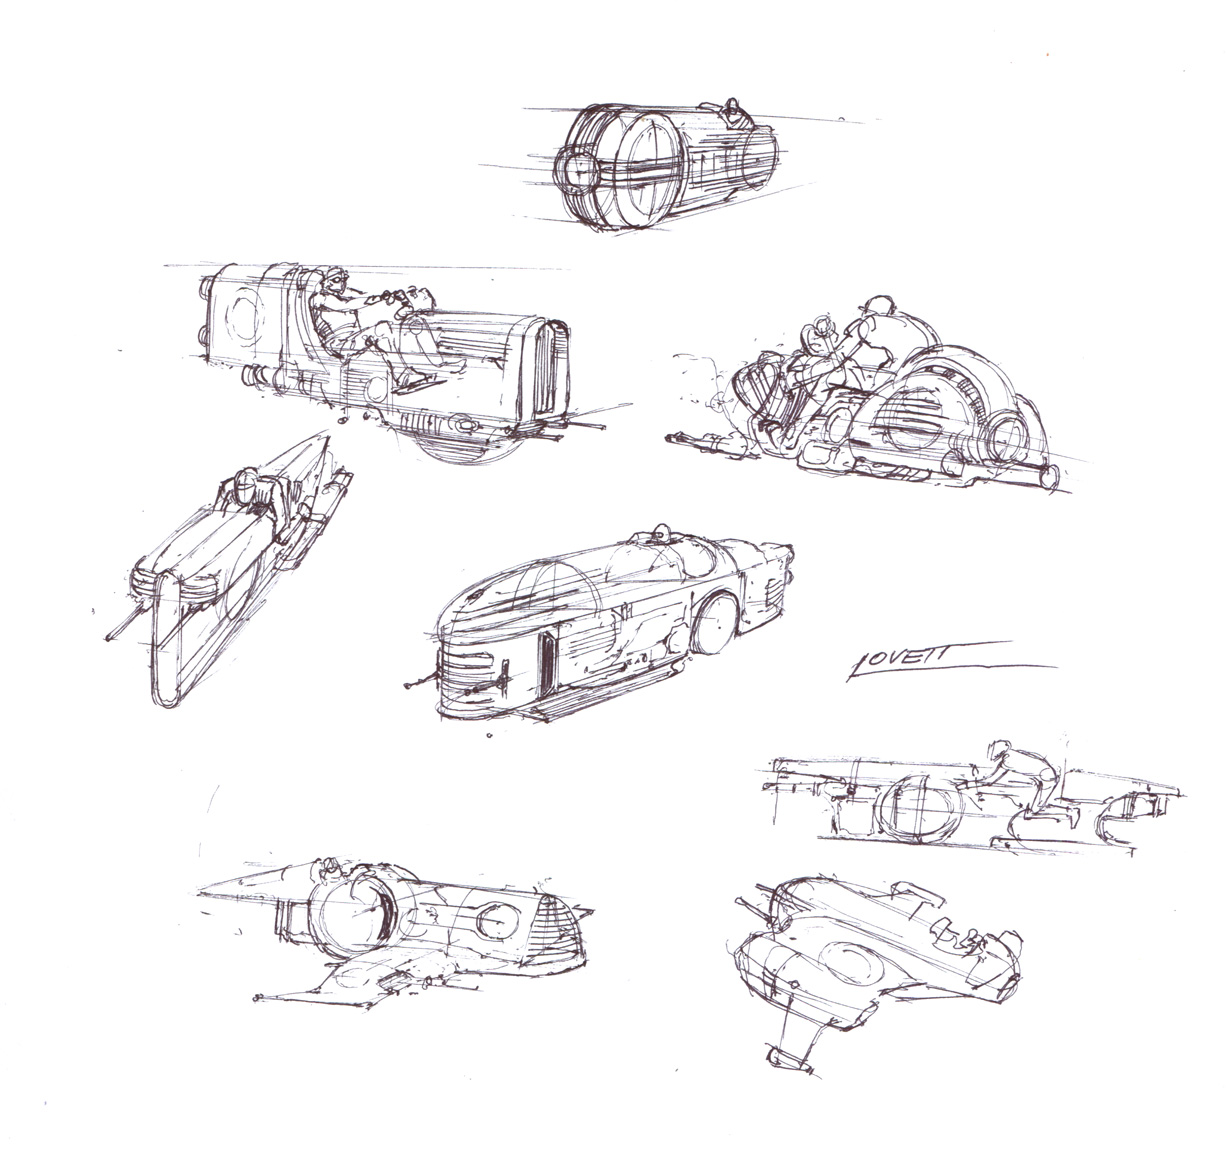 Speeder design sketches